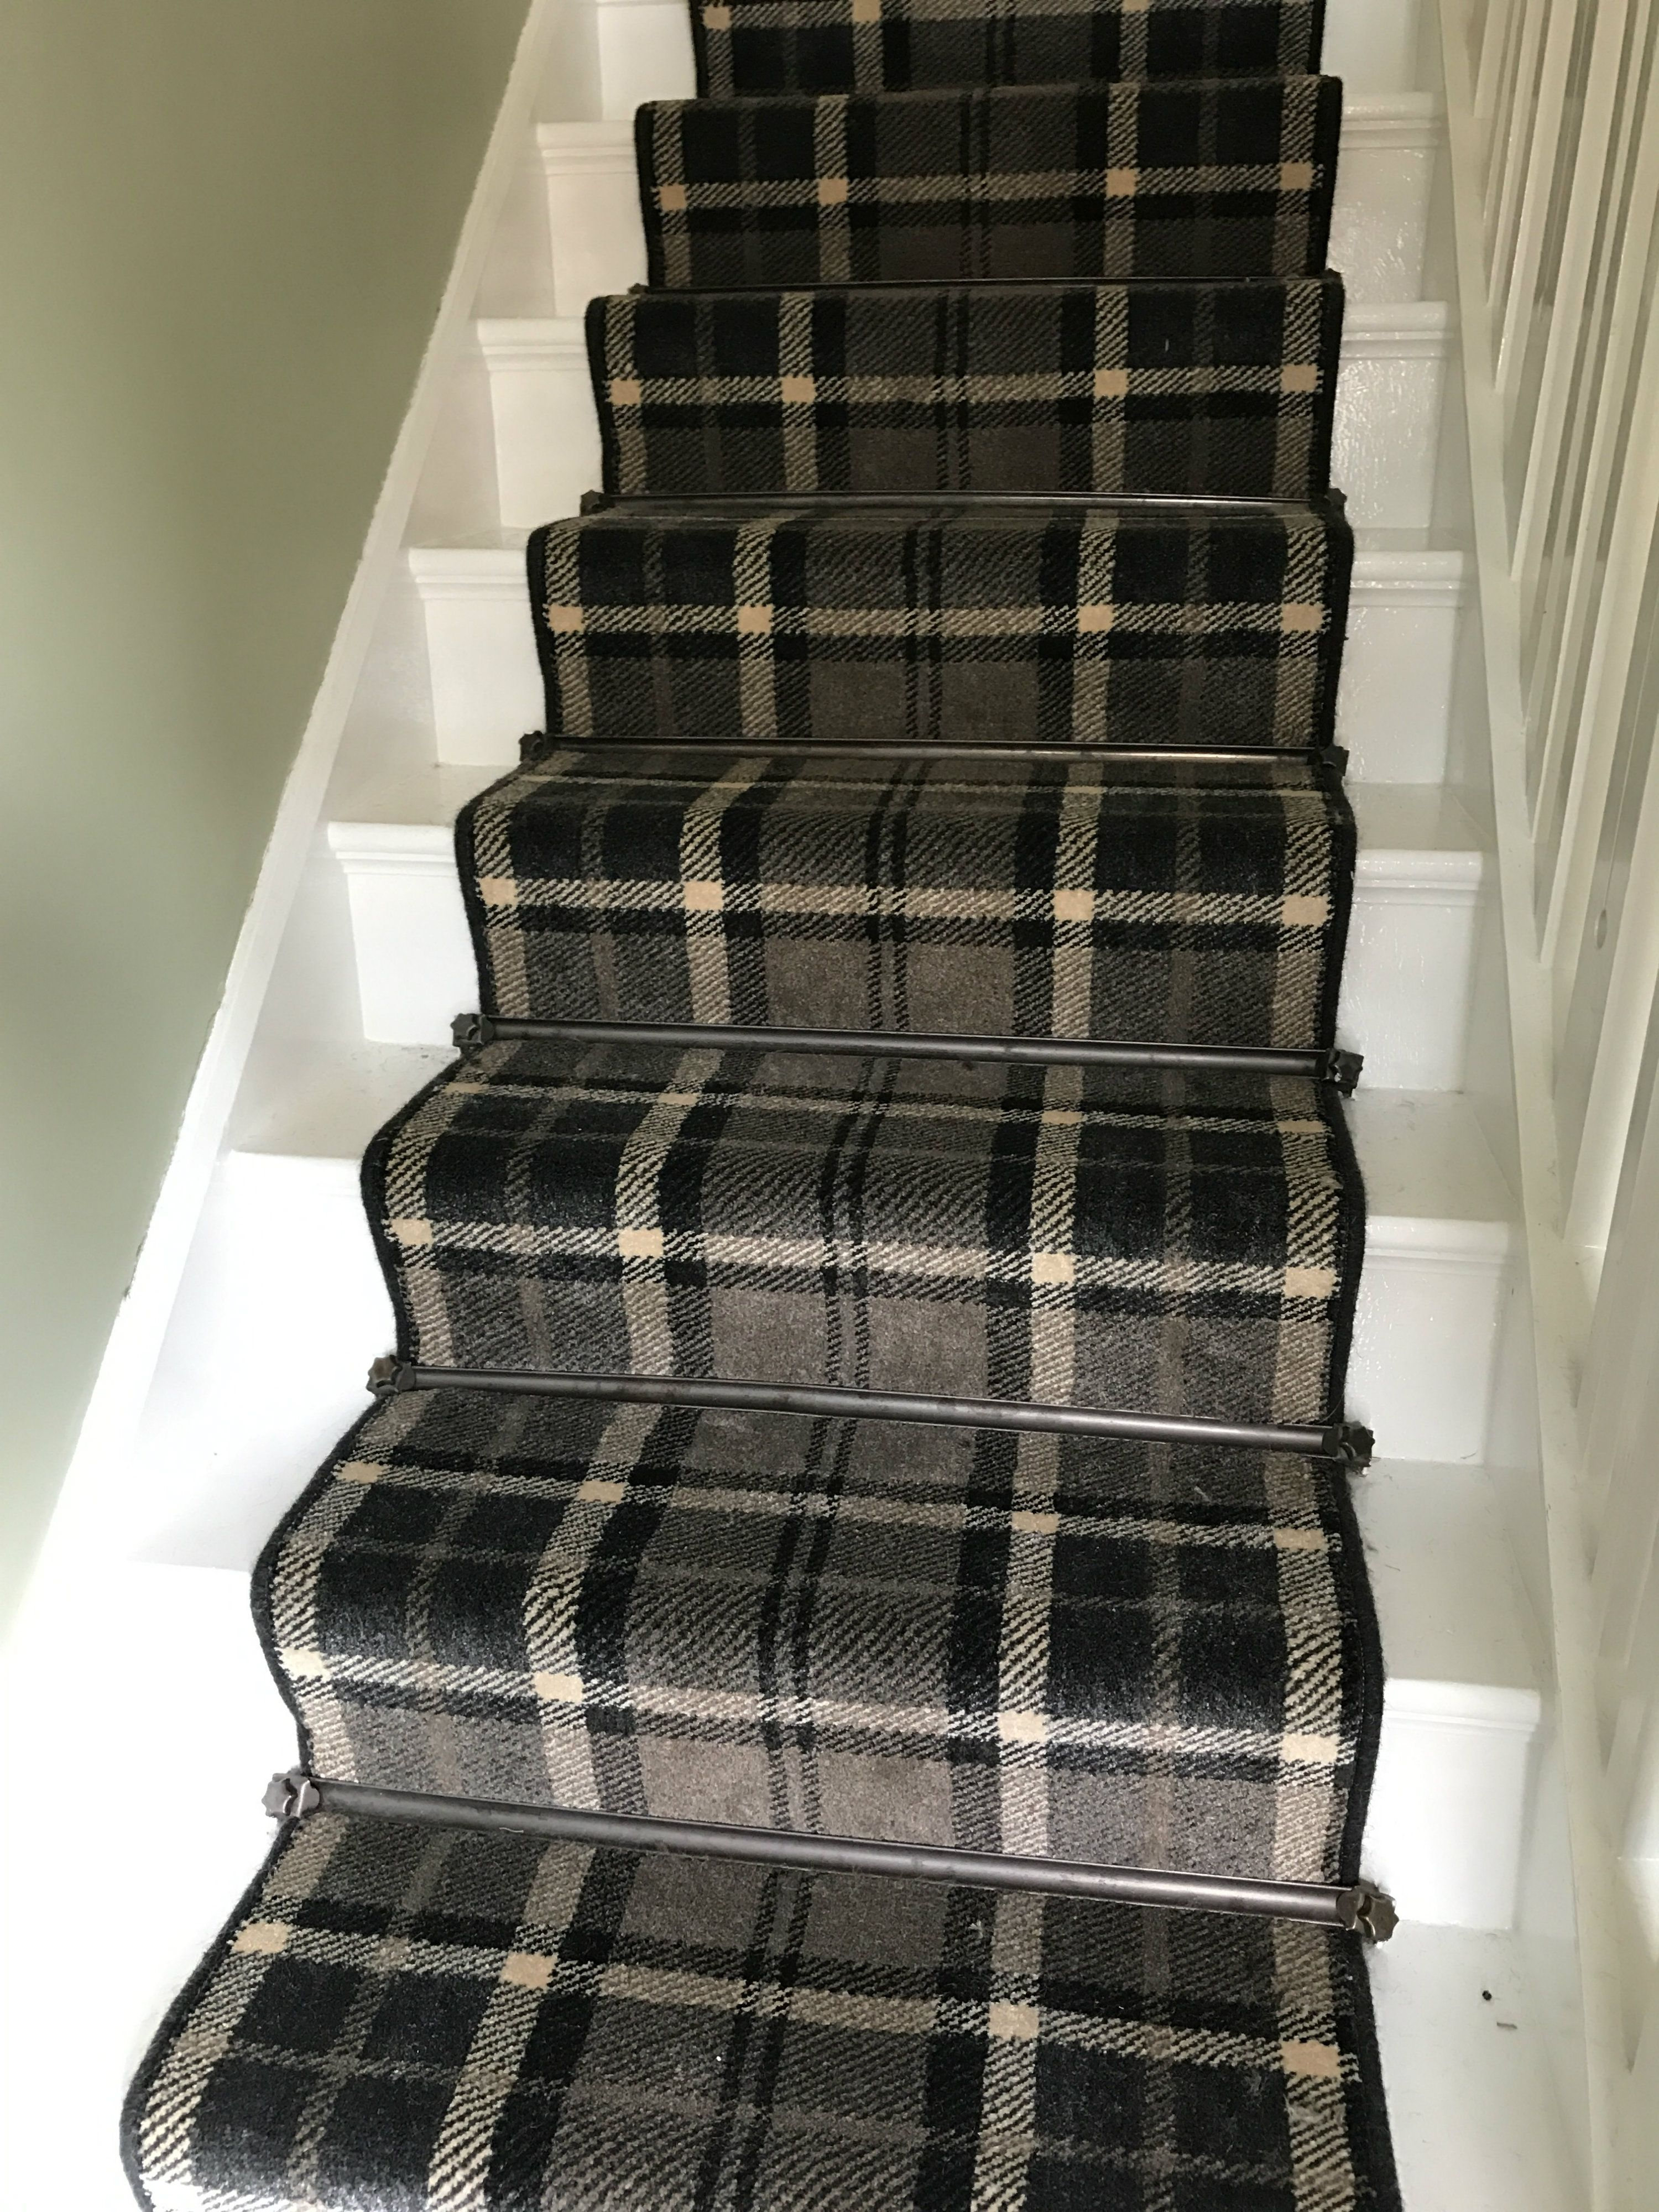 Thomas Witter Midas tartan nylon carpet Stair runner